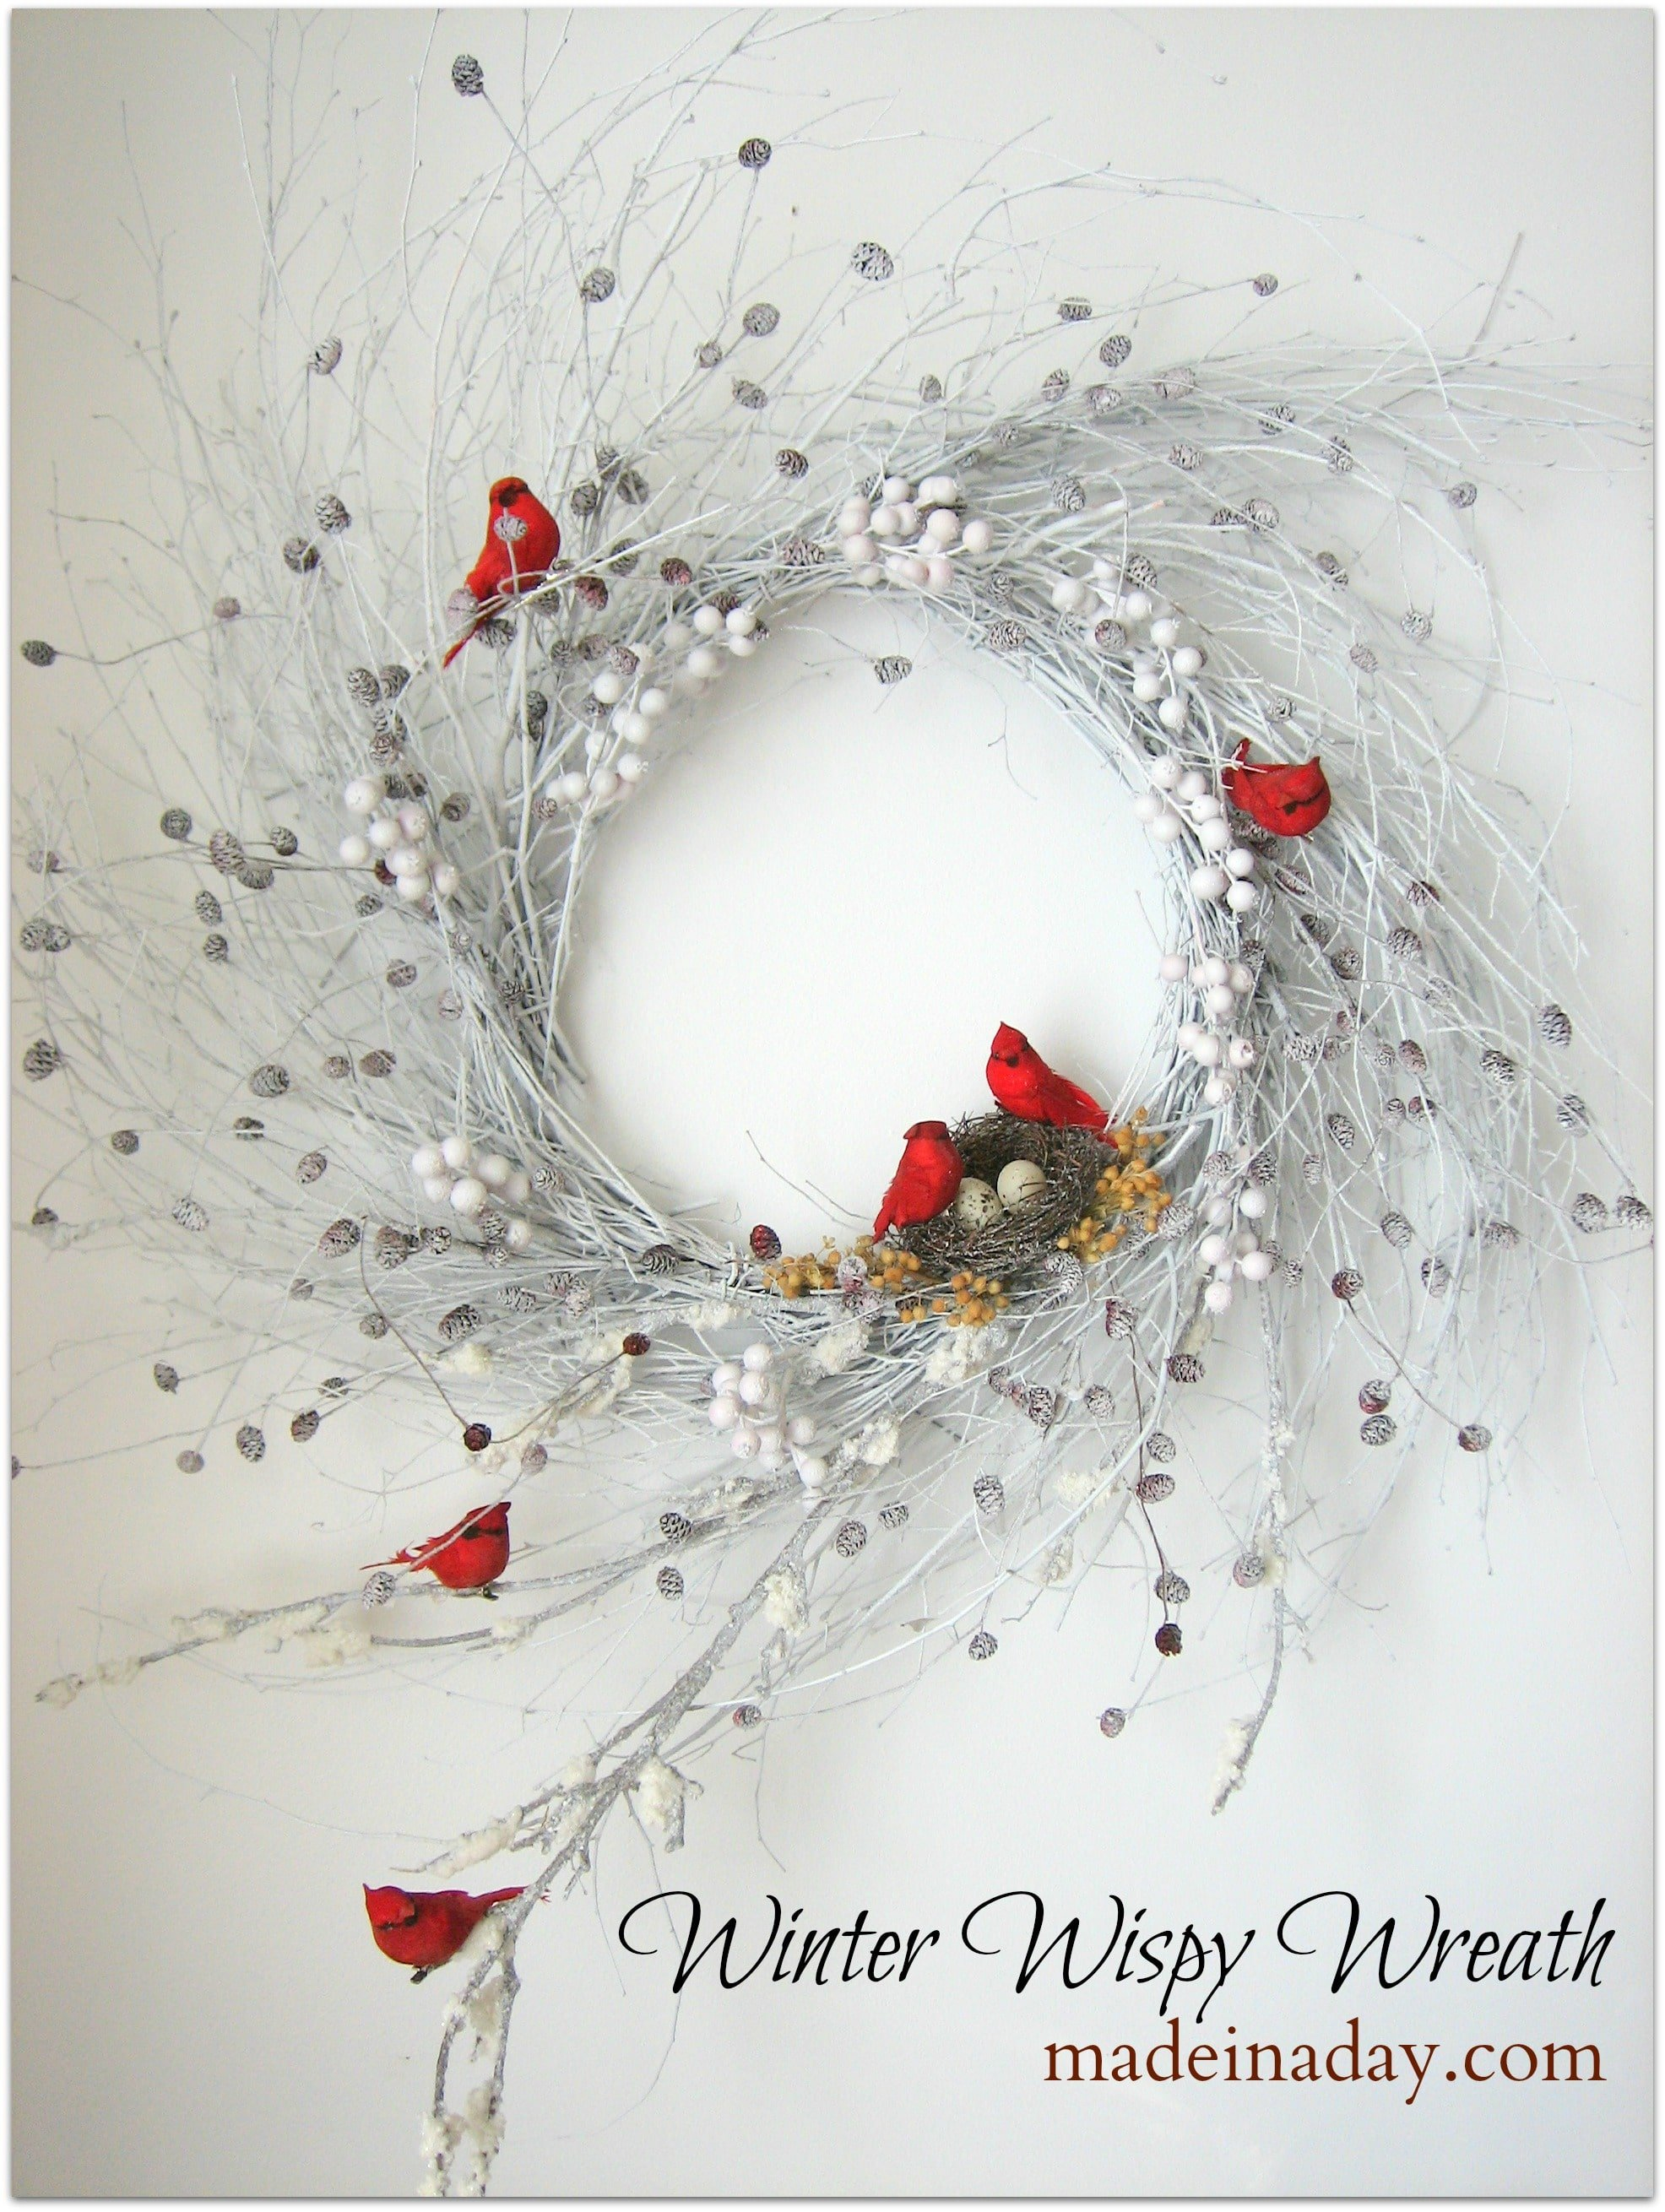 Wispy Winter Wreath